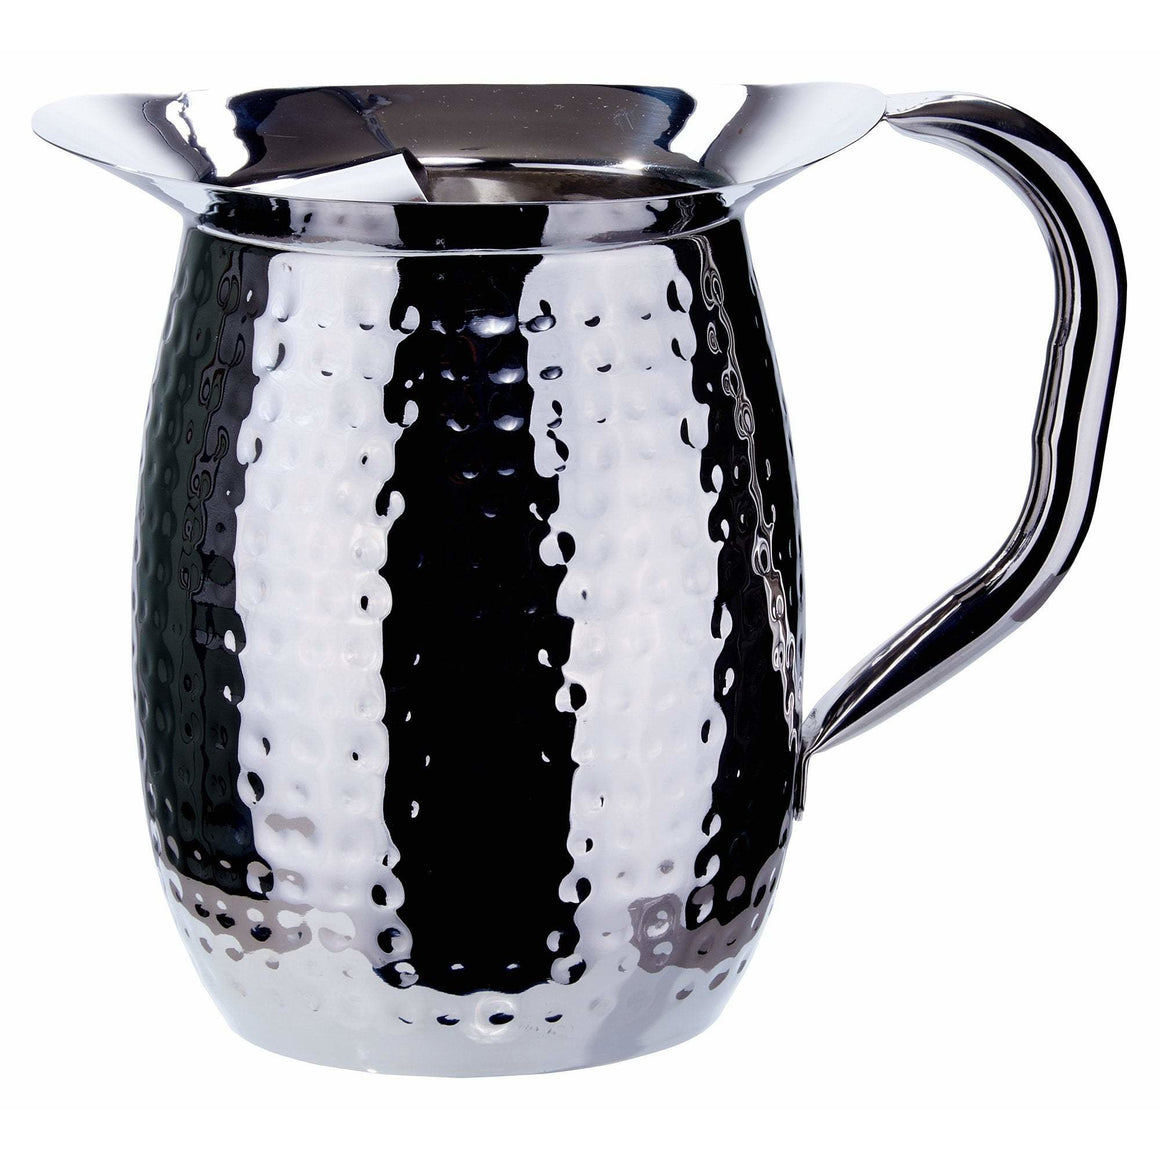 Winco - WPB-2CH - 2 Qt. Bell Pitcher w/ Ice Catcher, Hammered, Stainless Steel - Beverage Service